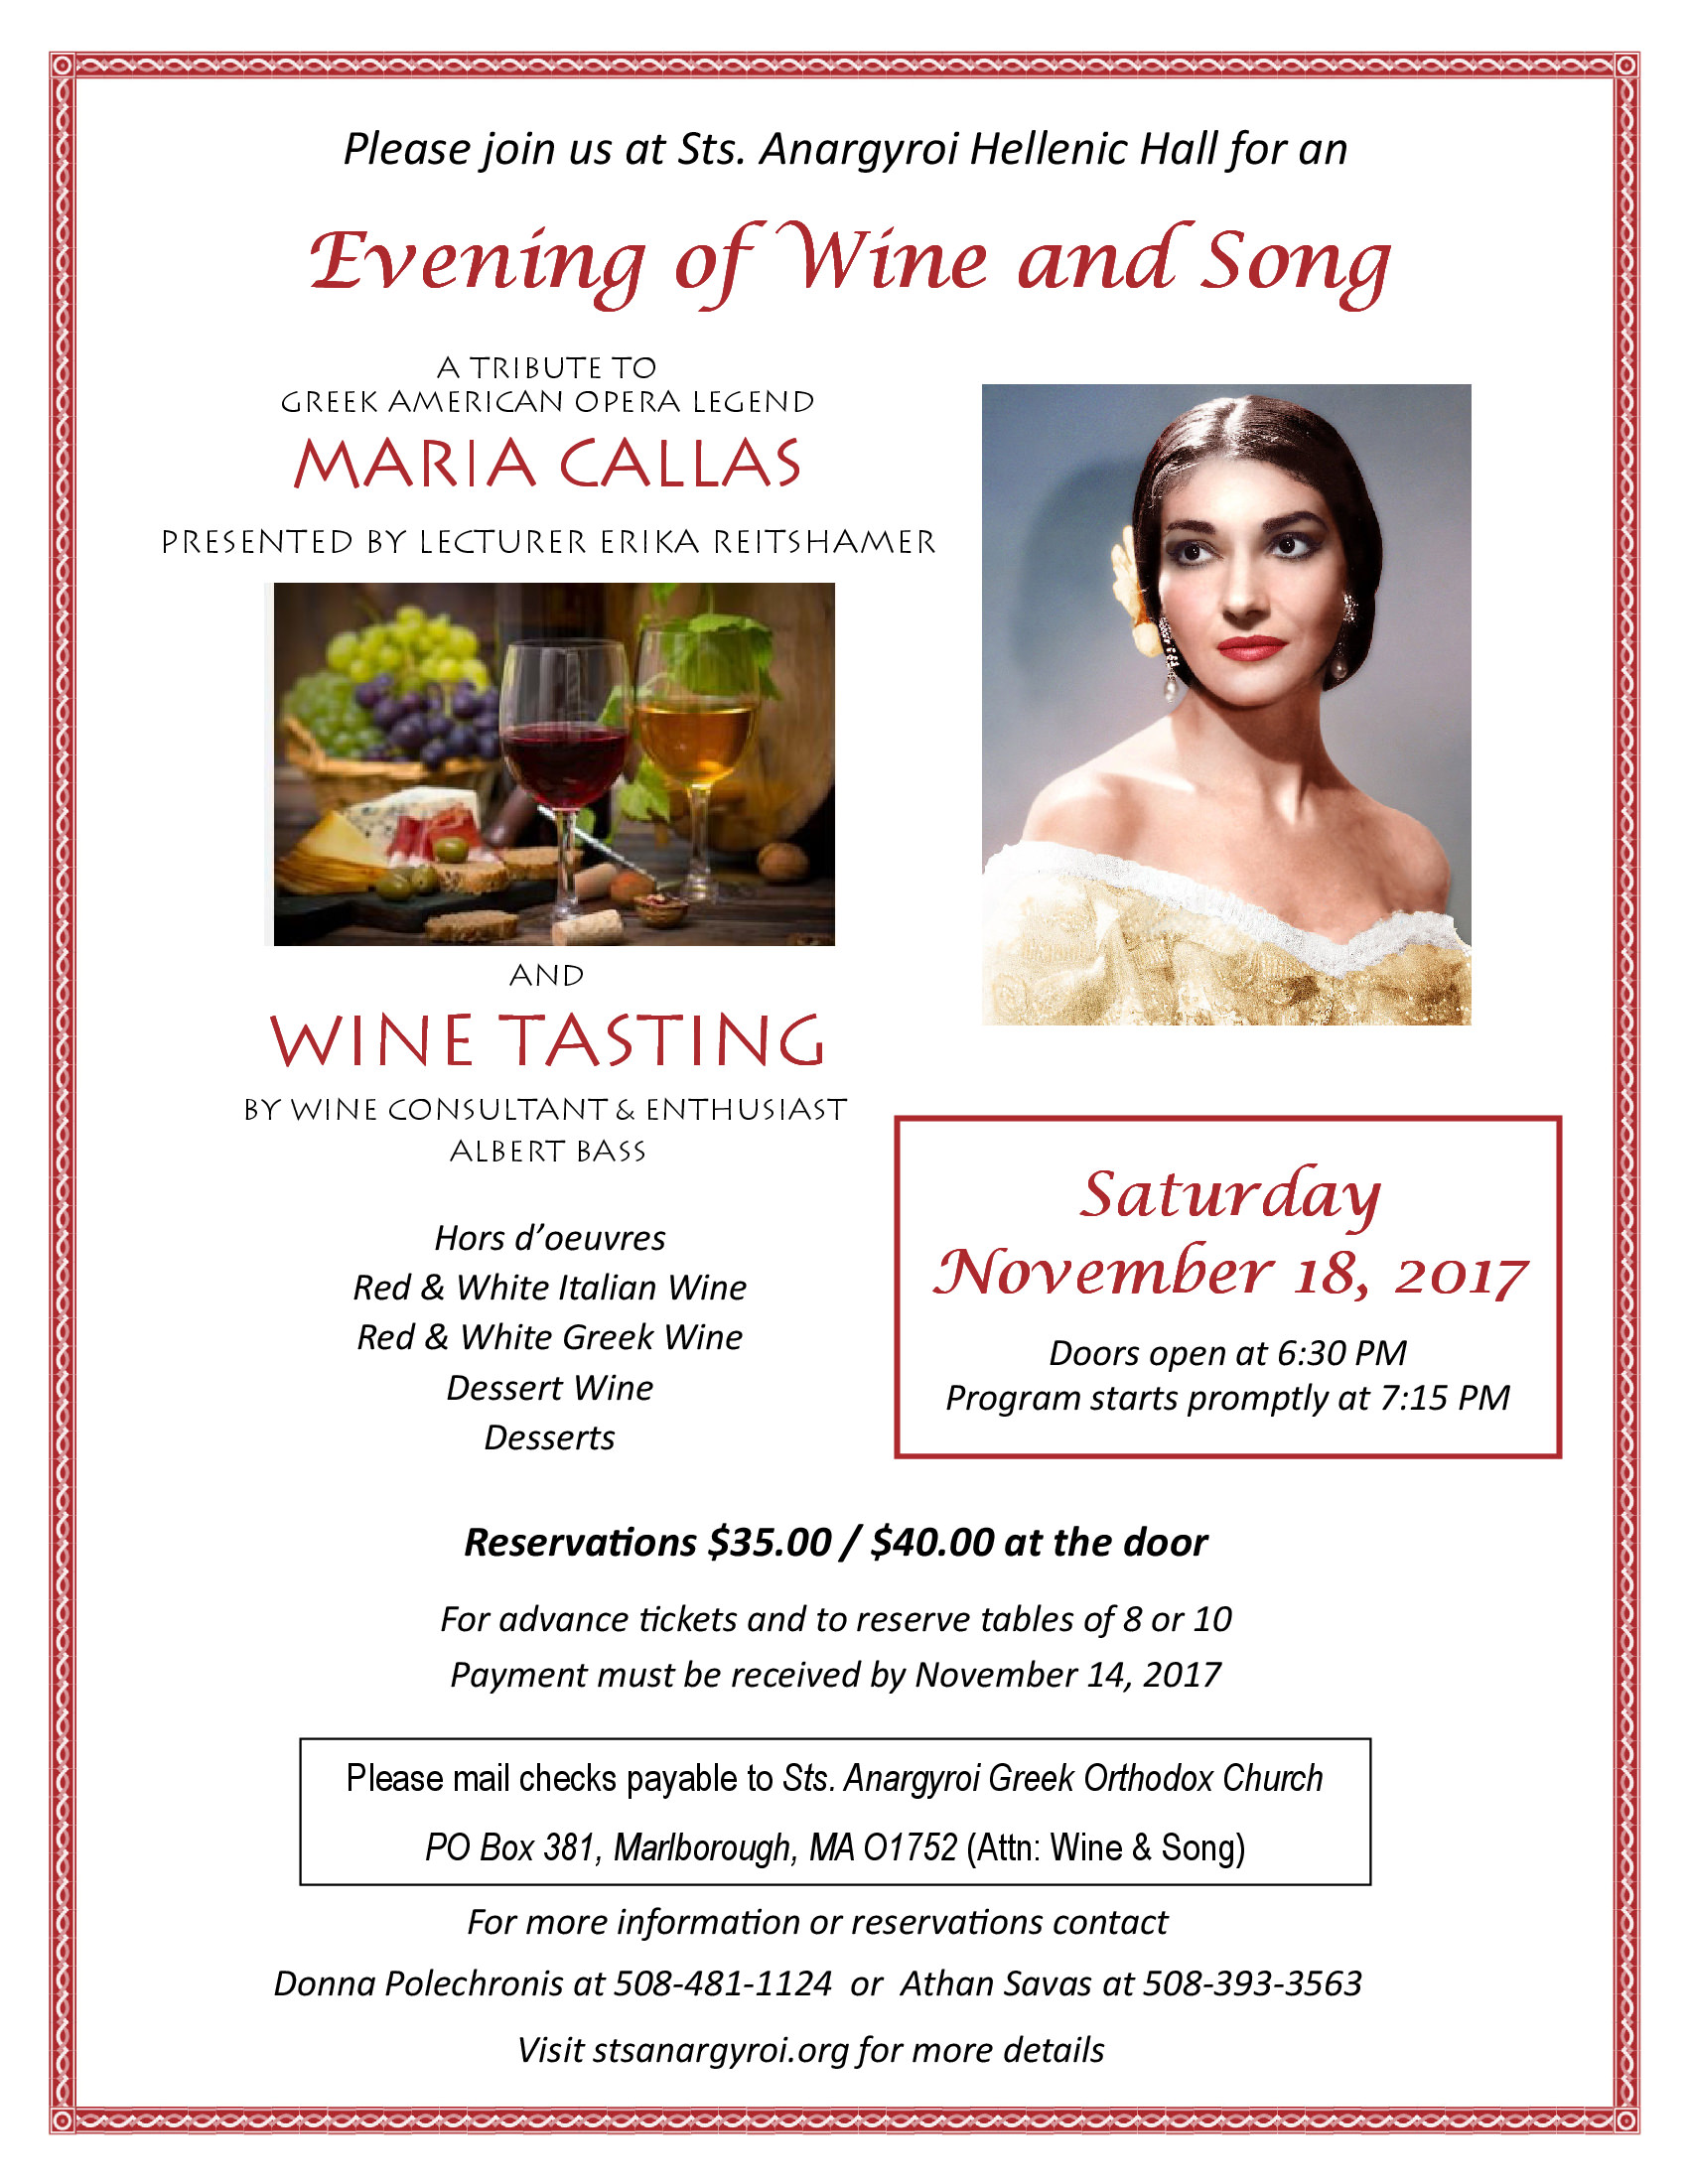 An Evening of Wine and Song at Saints Anargyroi Greek Church